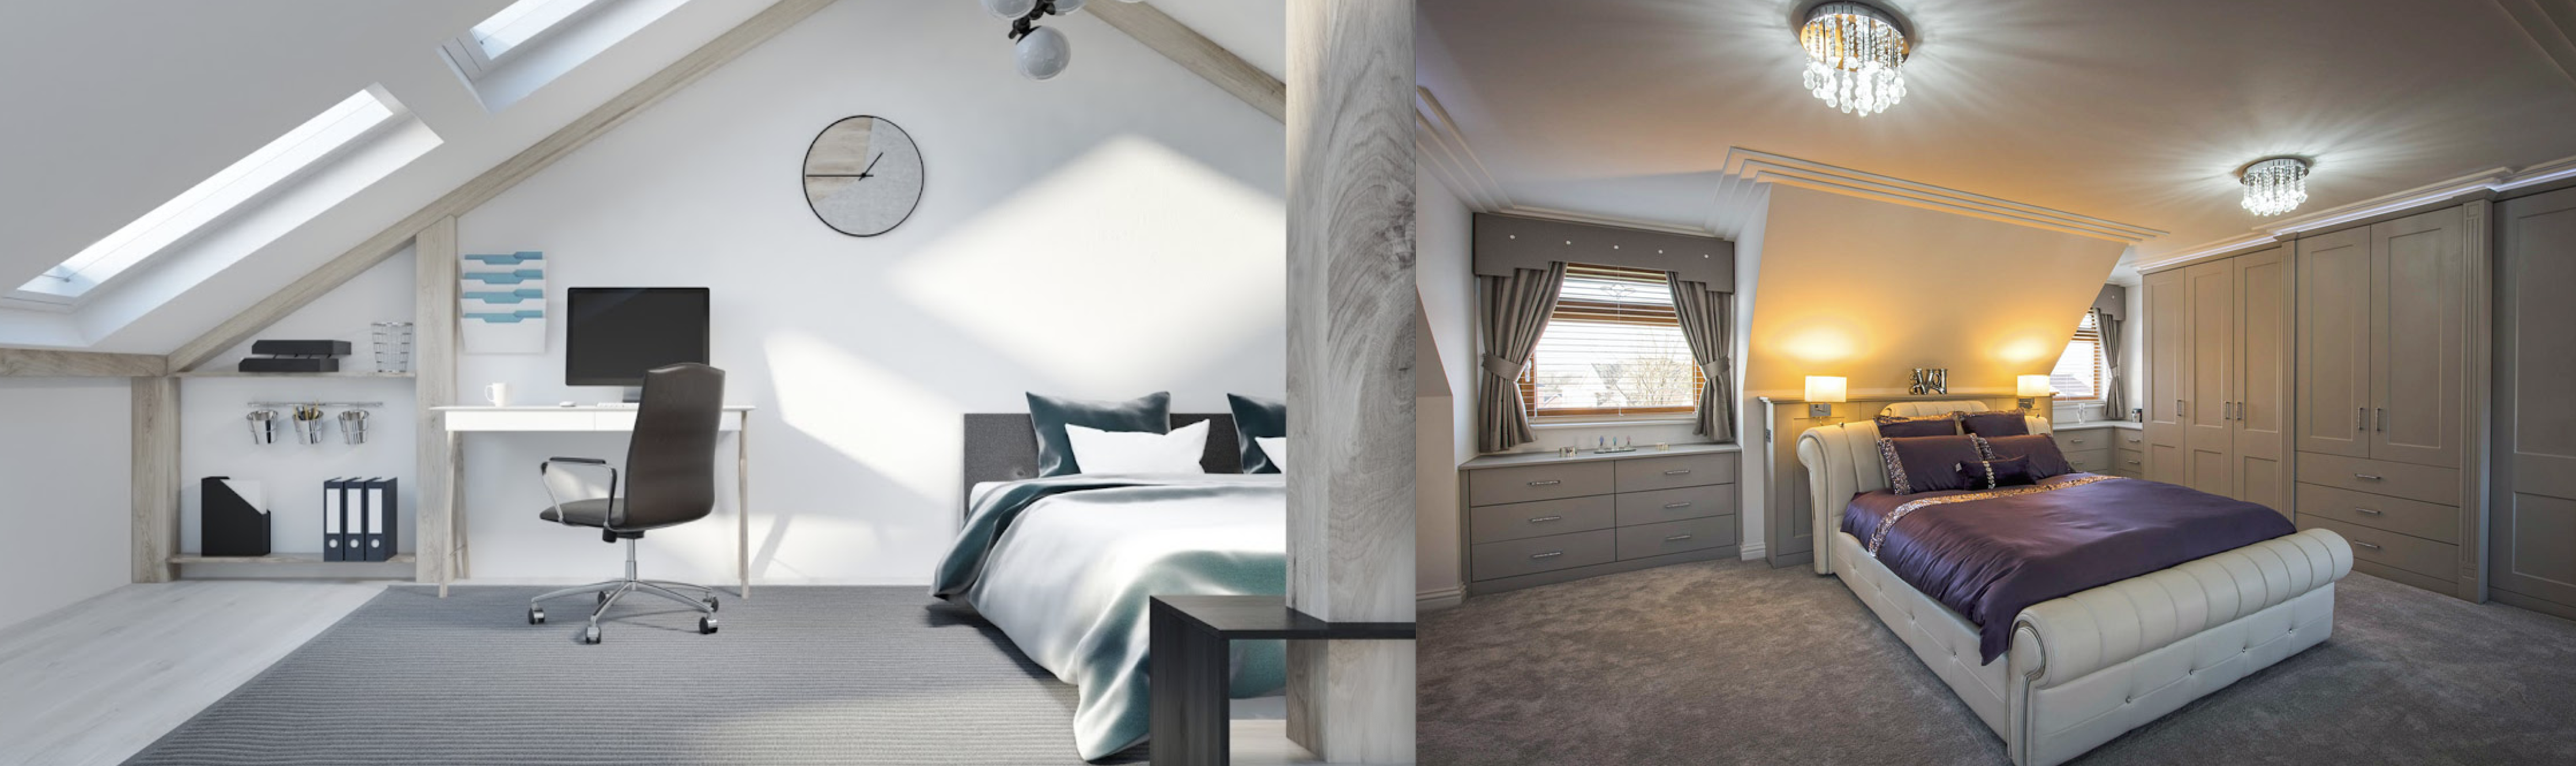 Beautiful Dormer loft conversion in Northenden, creating a new master bedroom with private bathroom, walk in wardrobe and stunning new oak staircase with Velux polyurethane SK06 GPU windows.